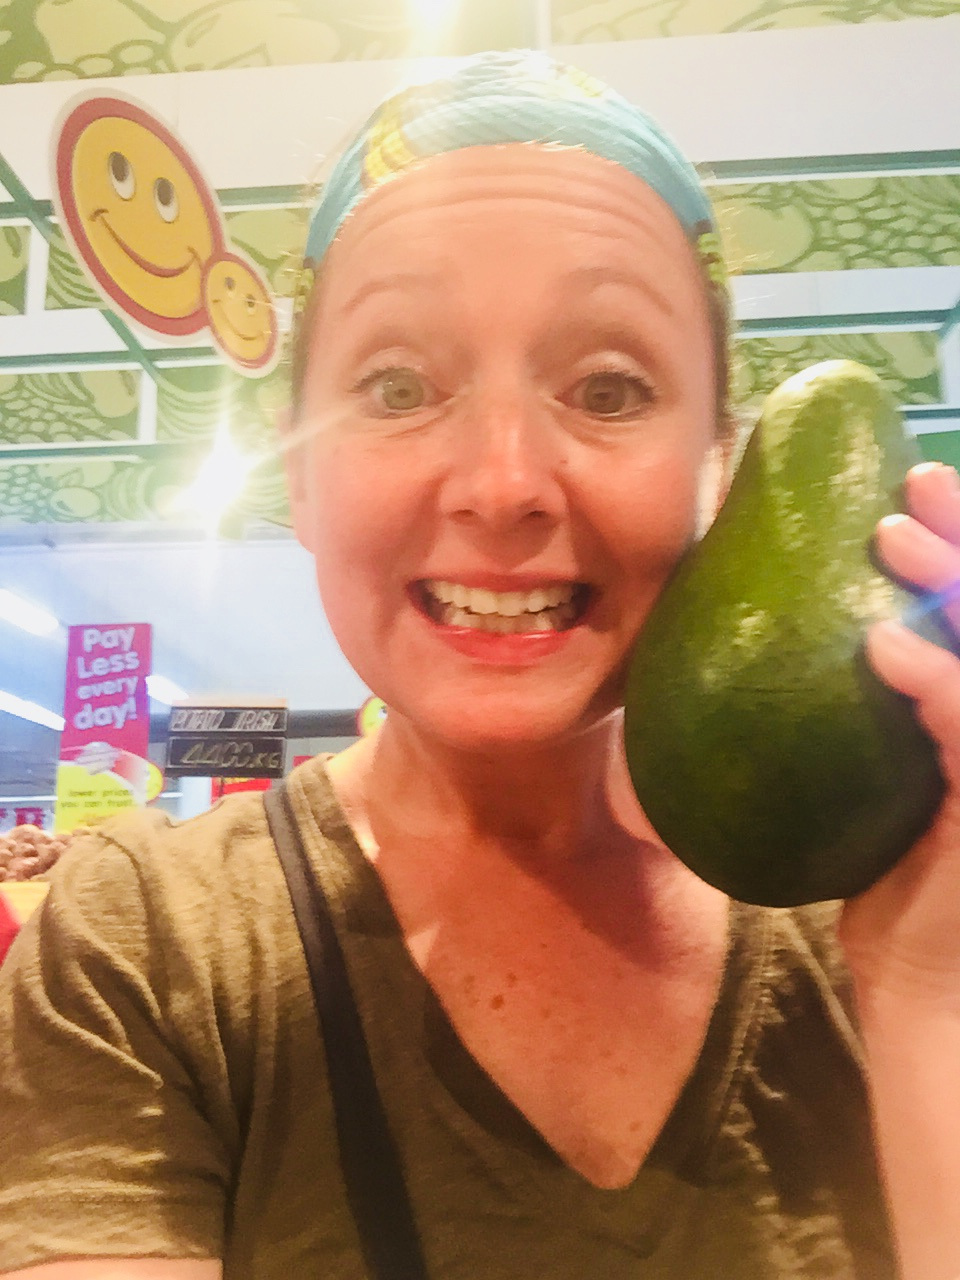 Me holding a giant avocado